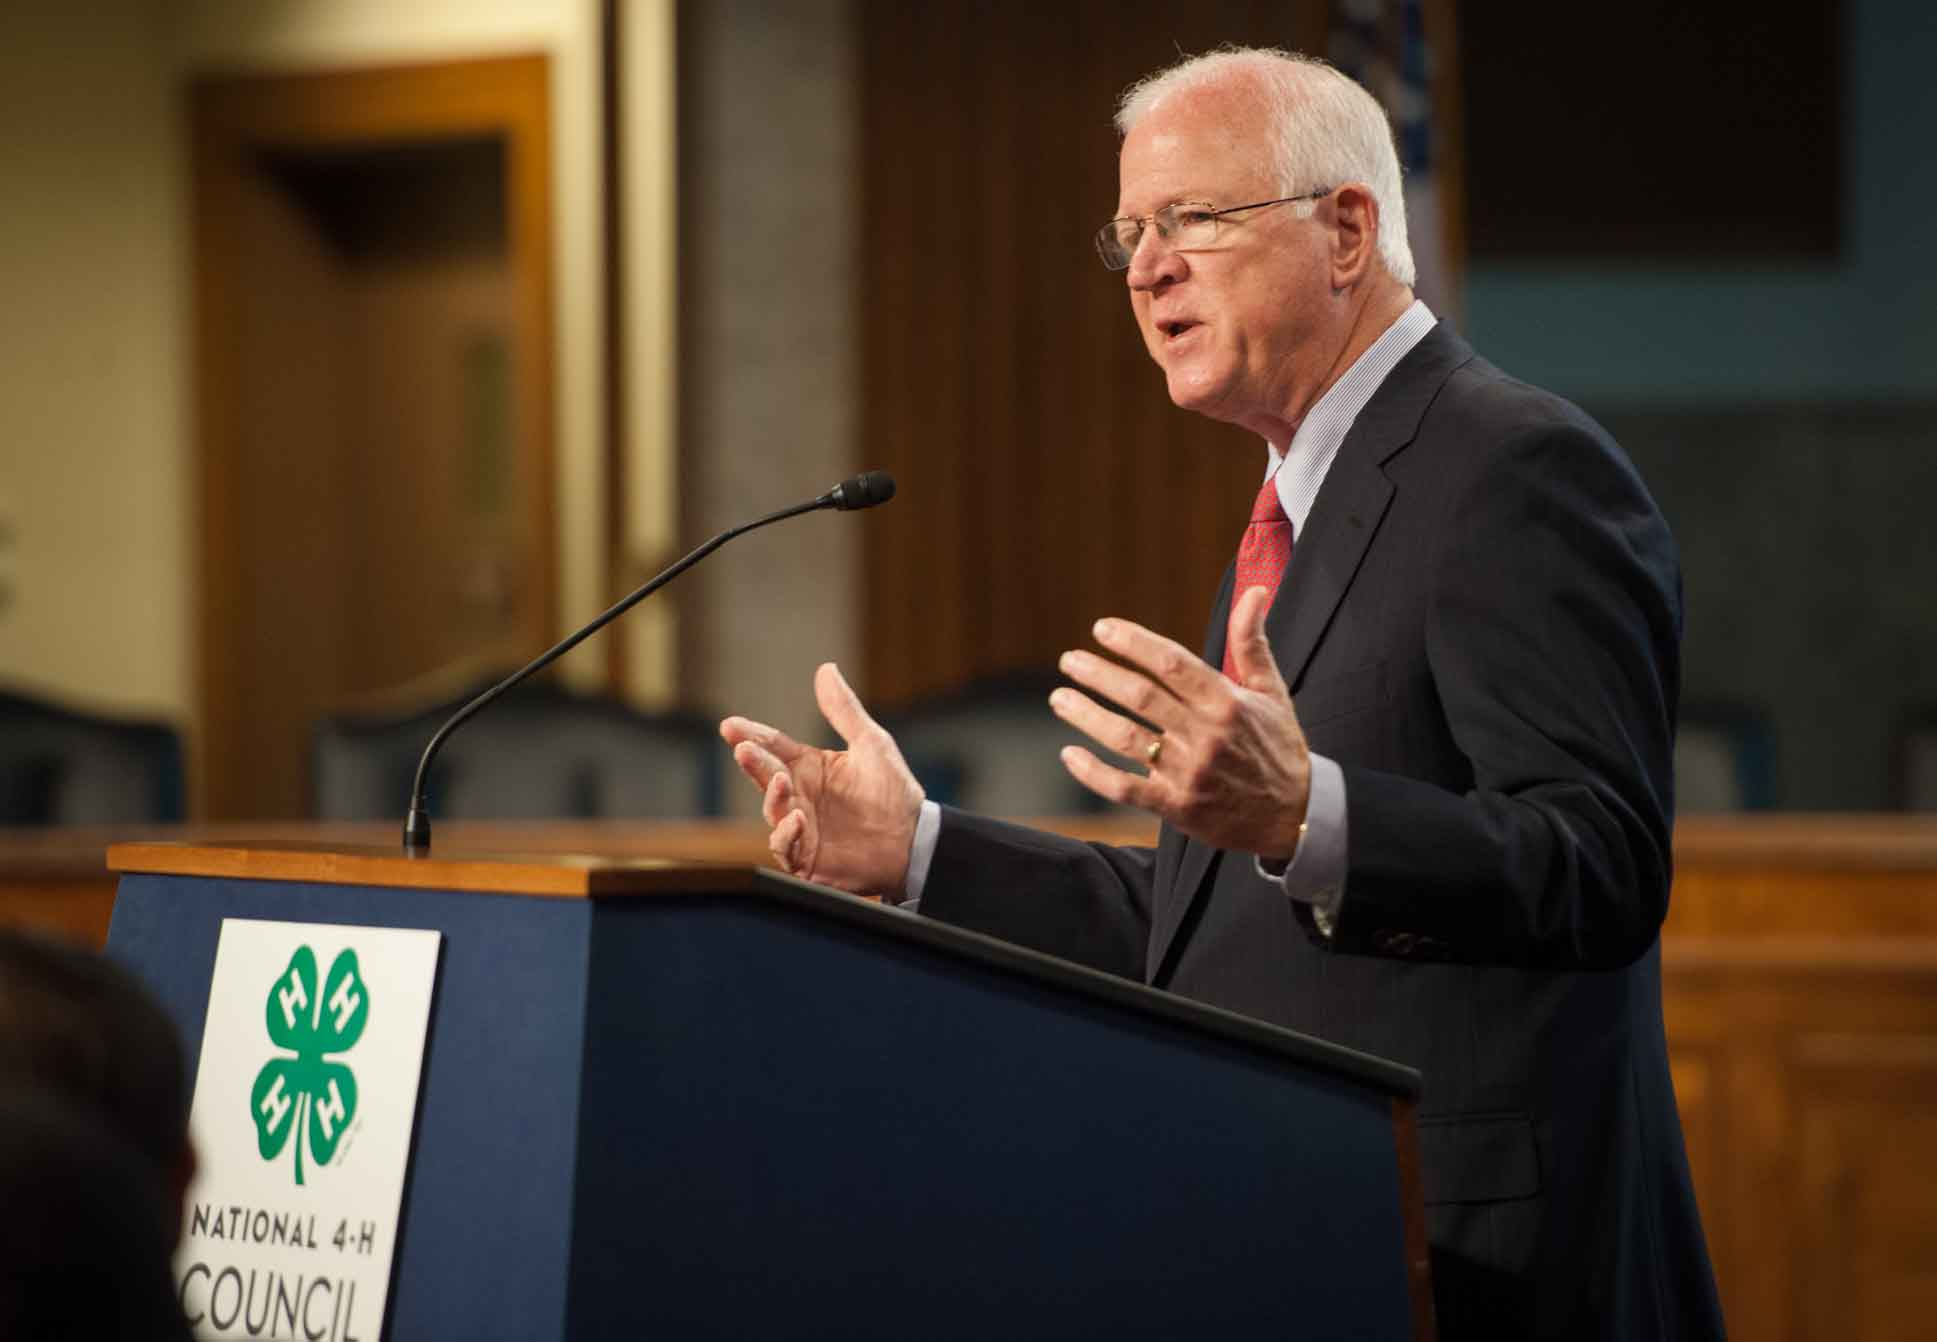 Sen. Saxby Chambliss speaks at the National 4-H Council Breakfast on April 9 in Washington D.C.